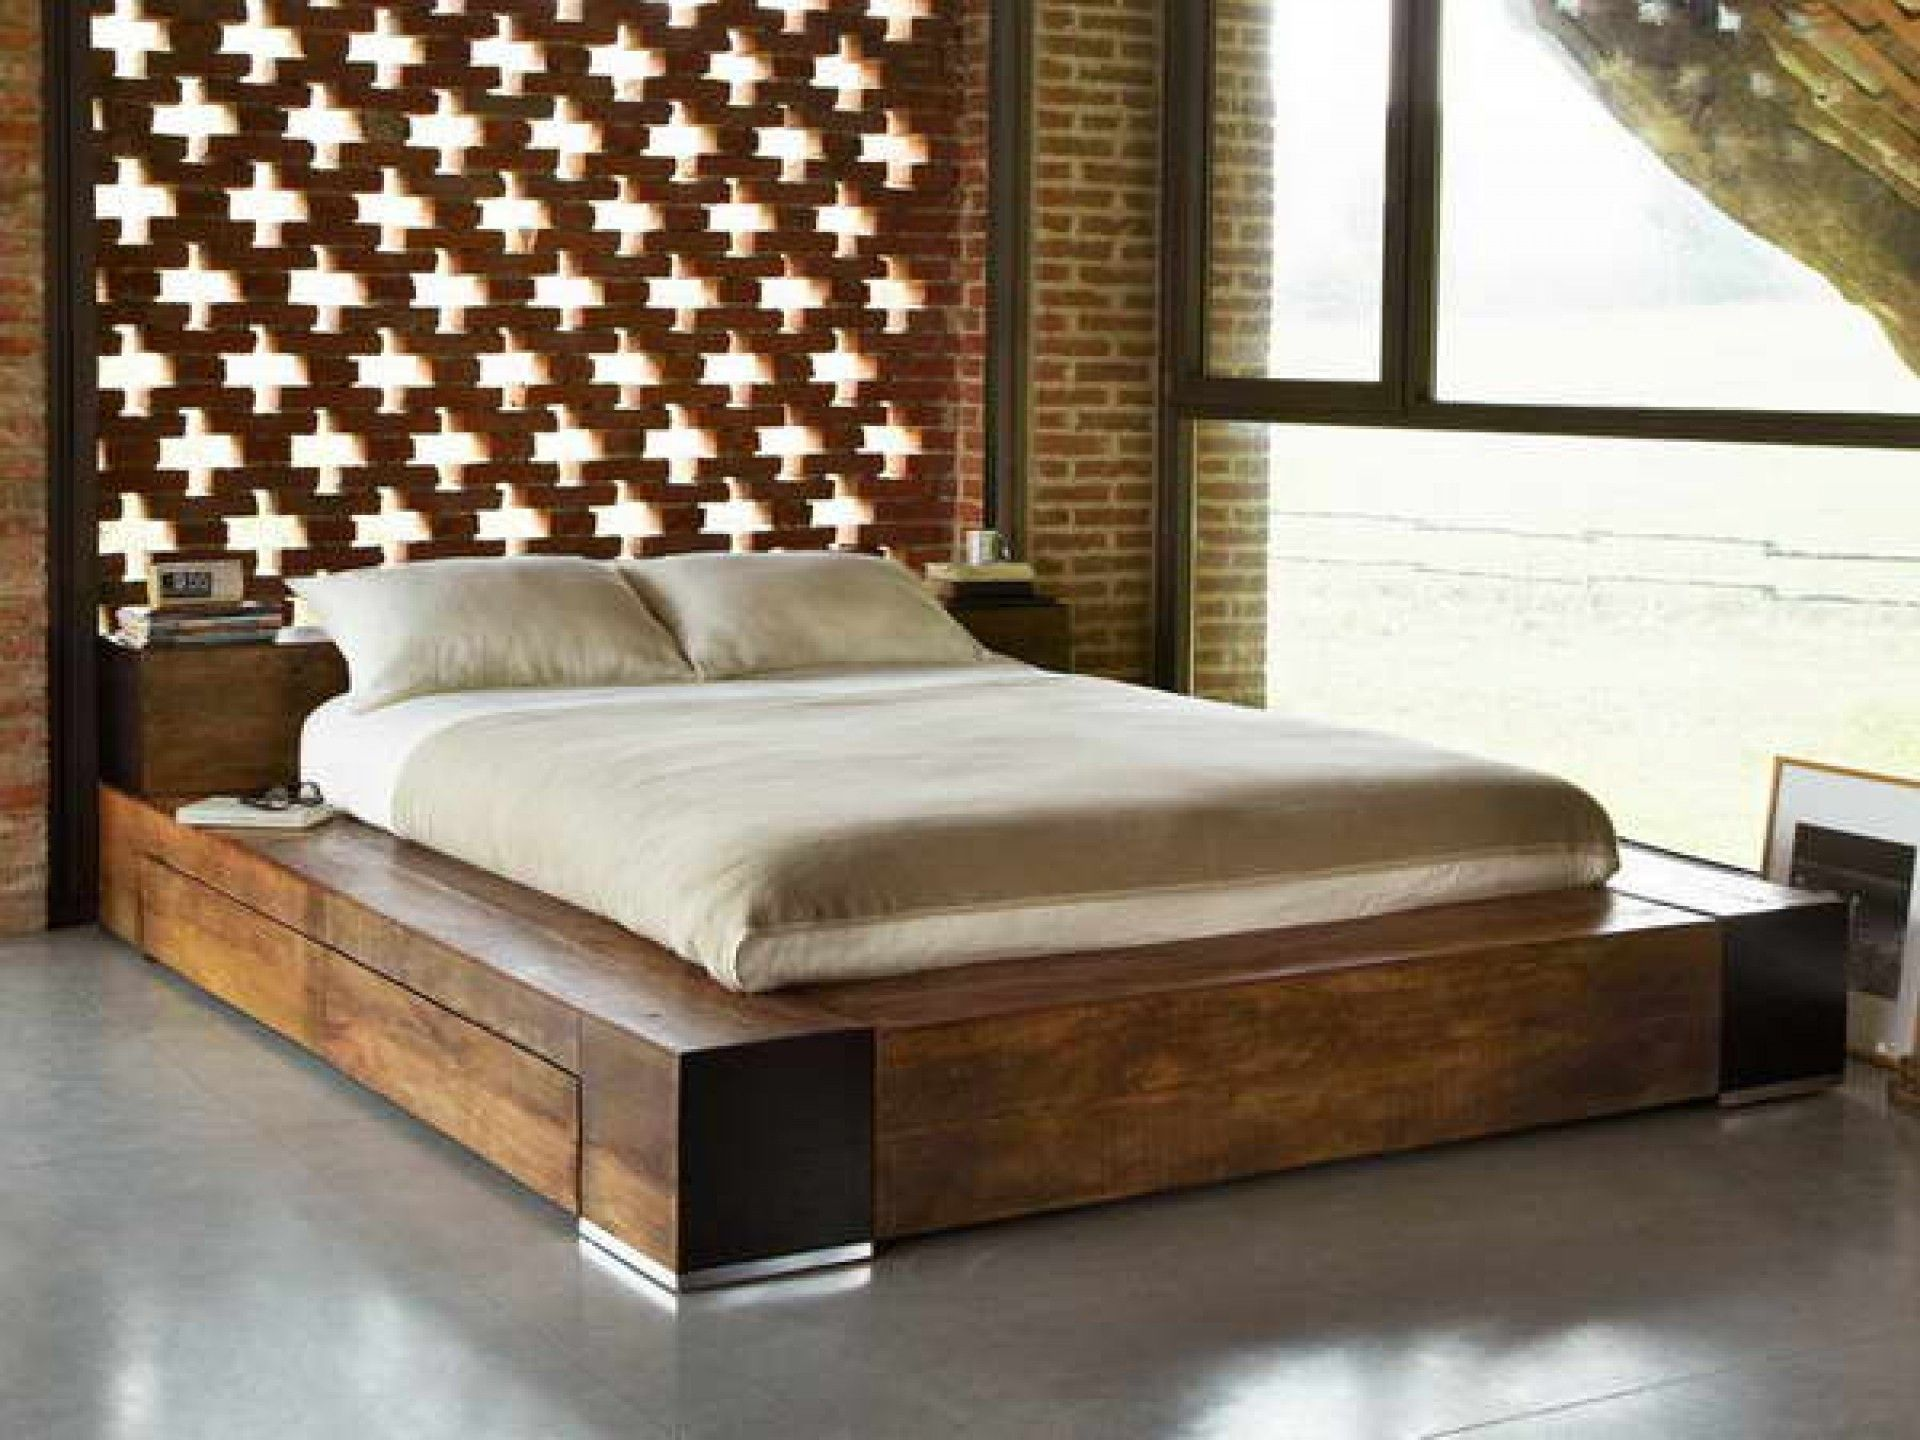 Wooden bed furniture design - Contemporary Natural Brown Reclaimed Solid Wood Bed Frame With Slim Foam Mattress With Cheap Modern Bedroom Furniture Also Best Bedroom Furniture Of